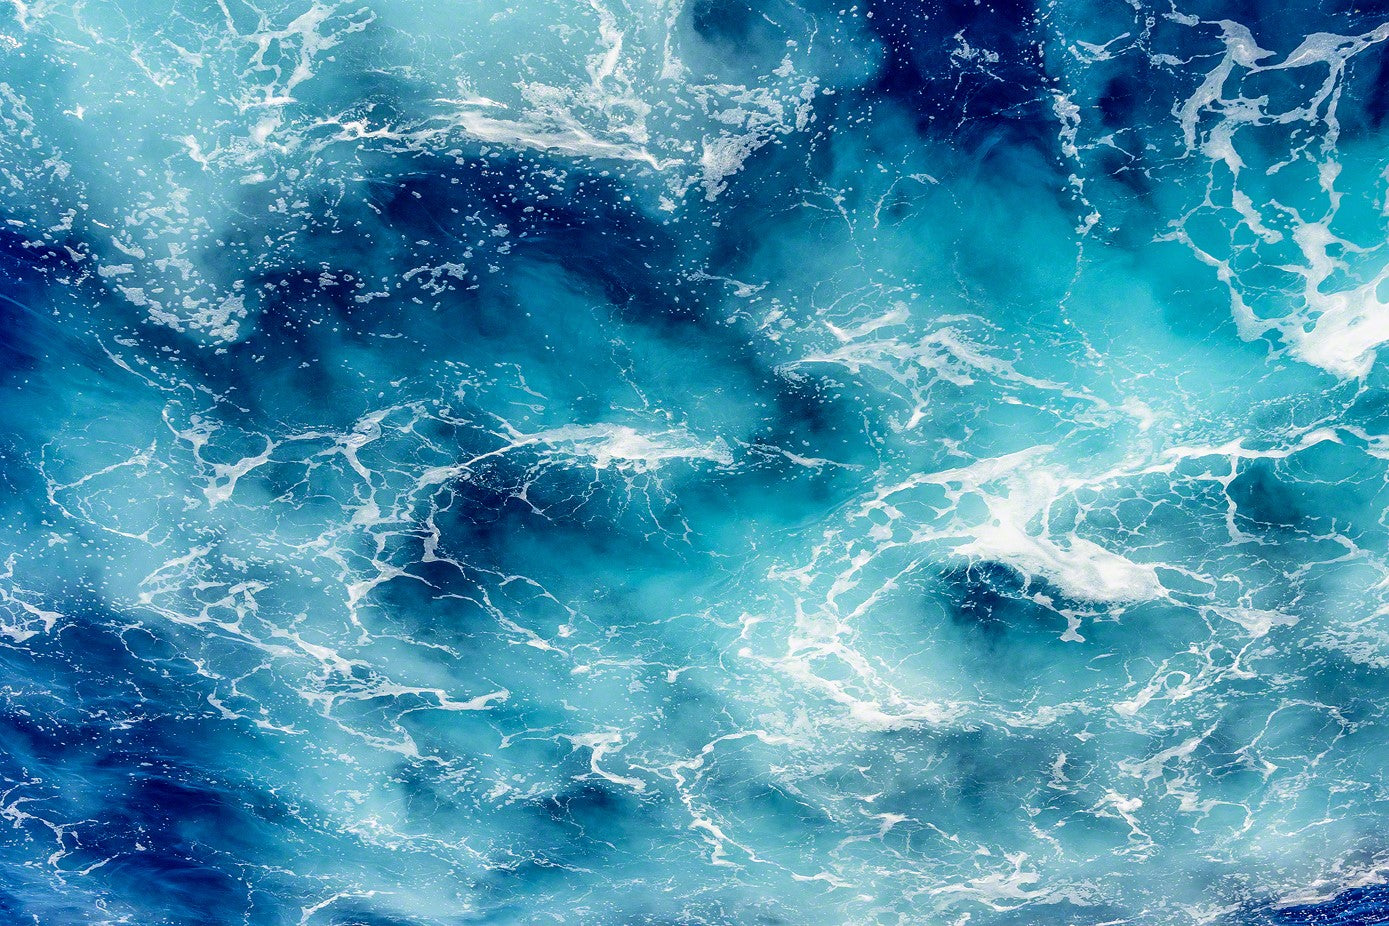 A photo of the swirling water of the Caribbean Sea